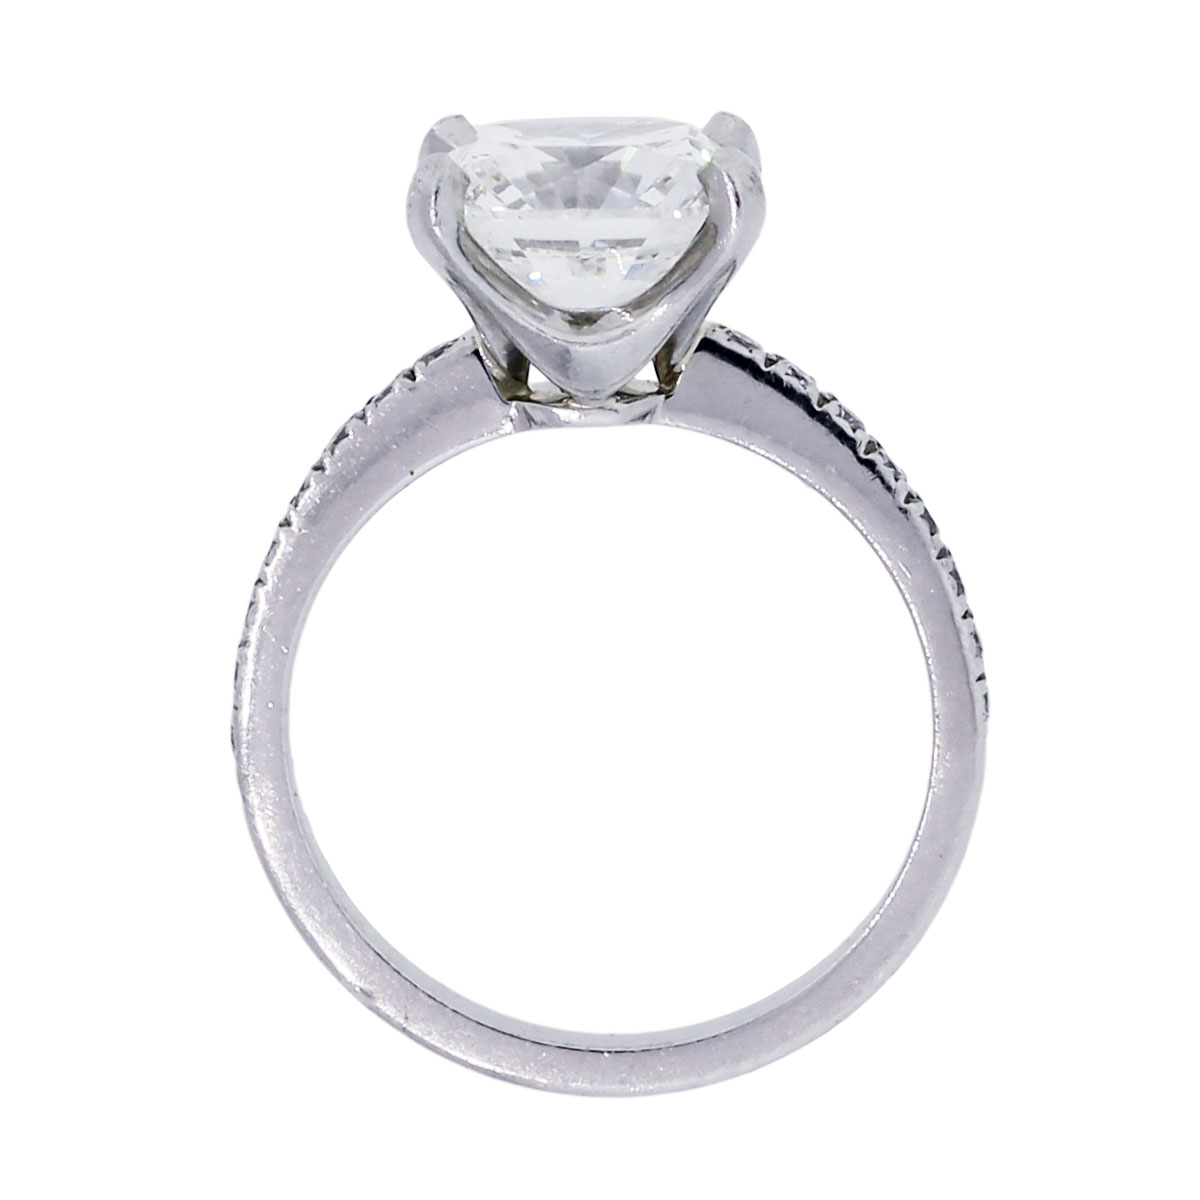 Tiffany & Co Rings NOVO Square Cushion Diamond Engagement Ring